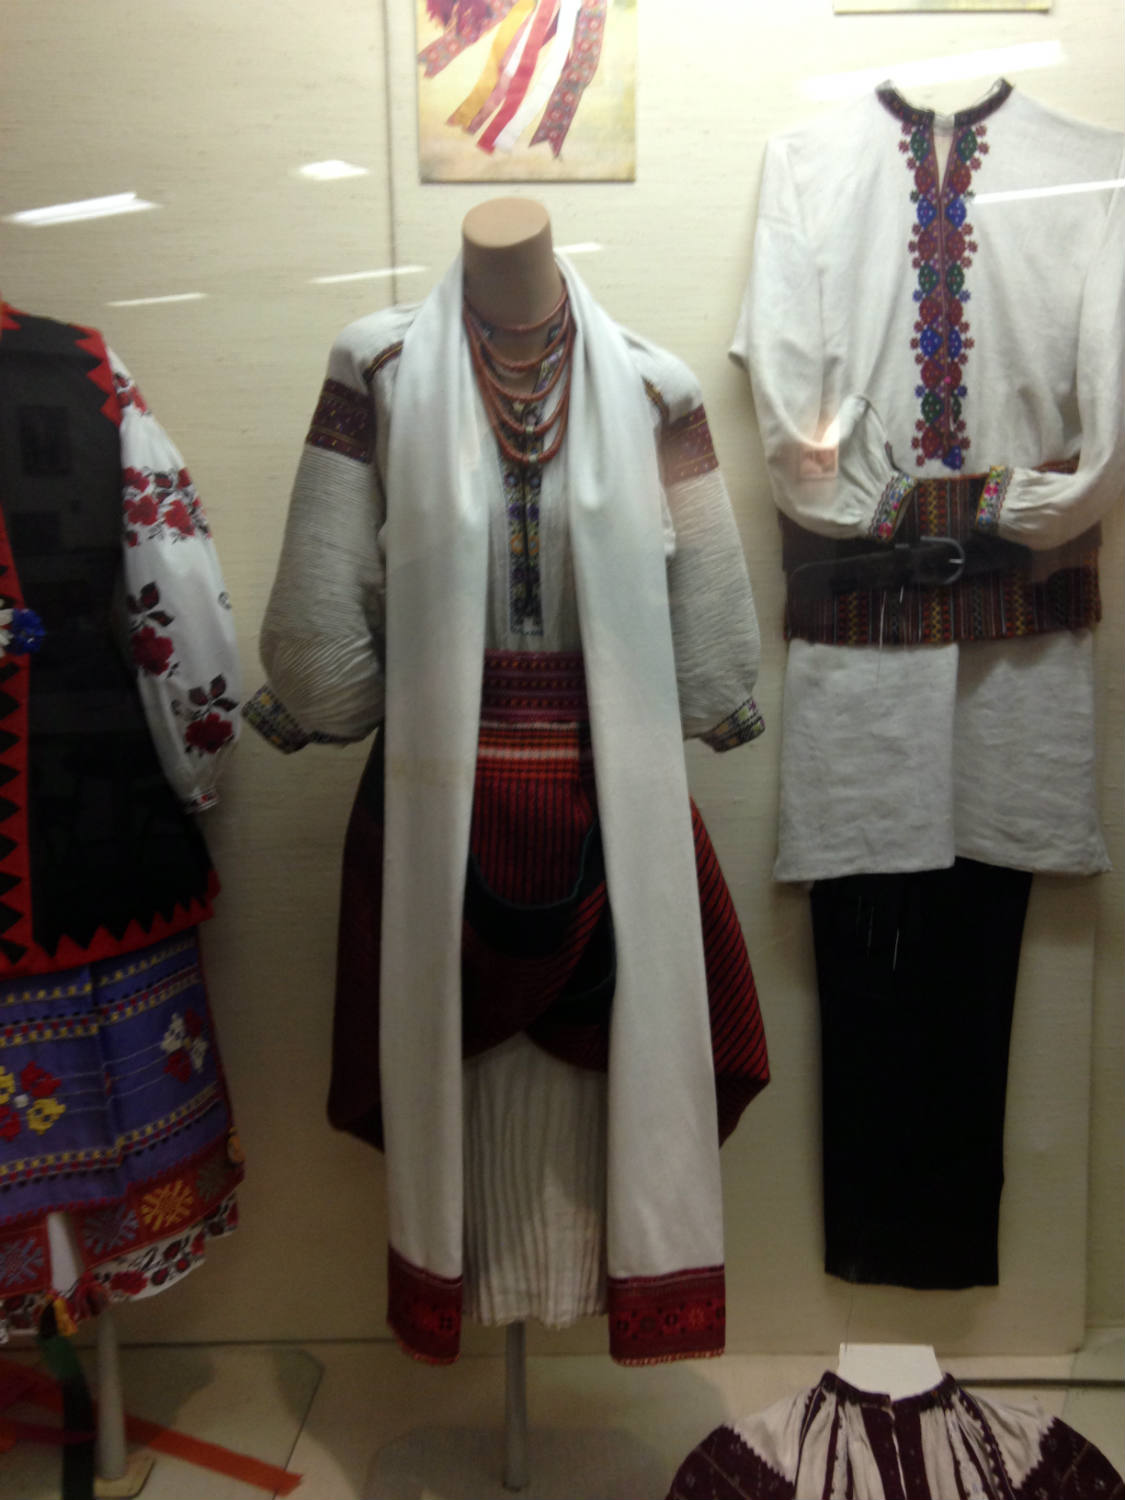 Traditional Ukrainian Costumes at St. Josaphat's Church in Rochester, New York